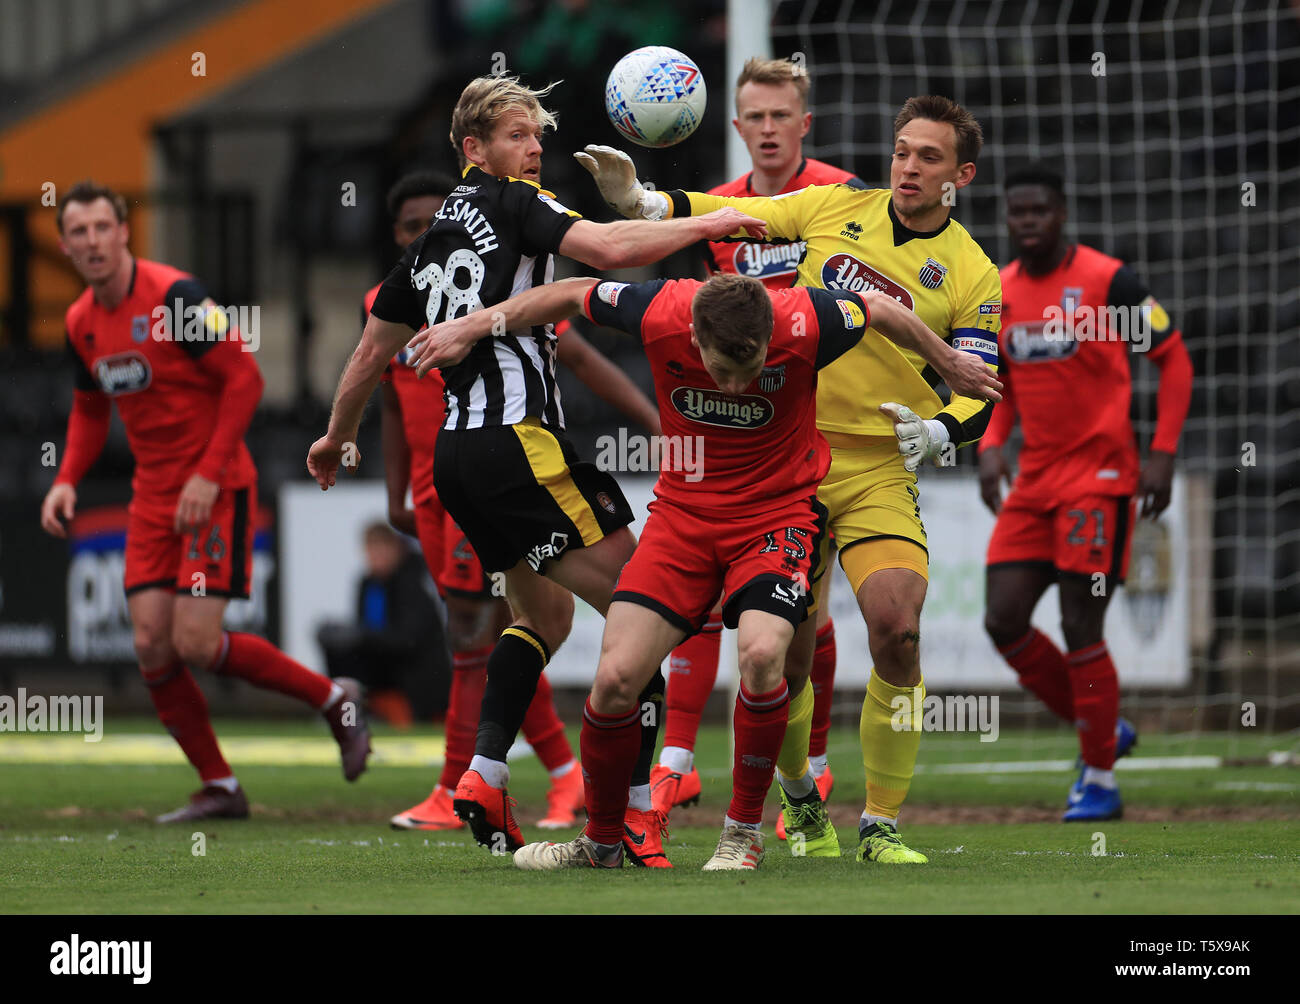 Notts County's Craig Mackail-Smith and Grimsby Town's James McKeown and Harry Clifton during the Sky Bet League Two match at Meadow Lane, Nottingham. - Stock Image